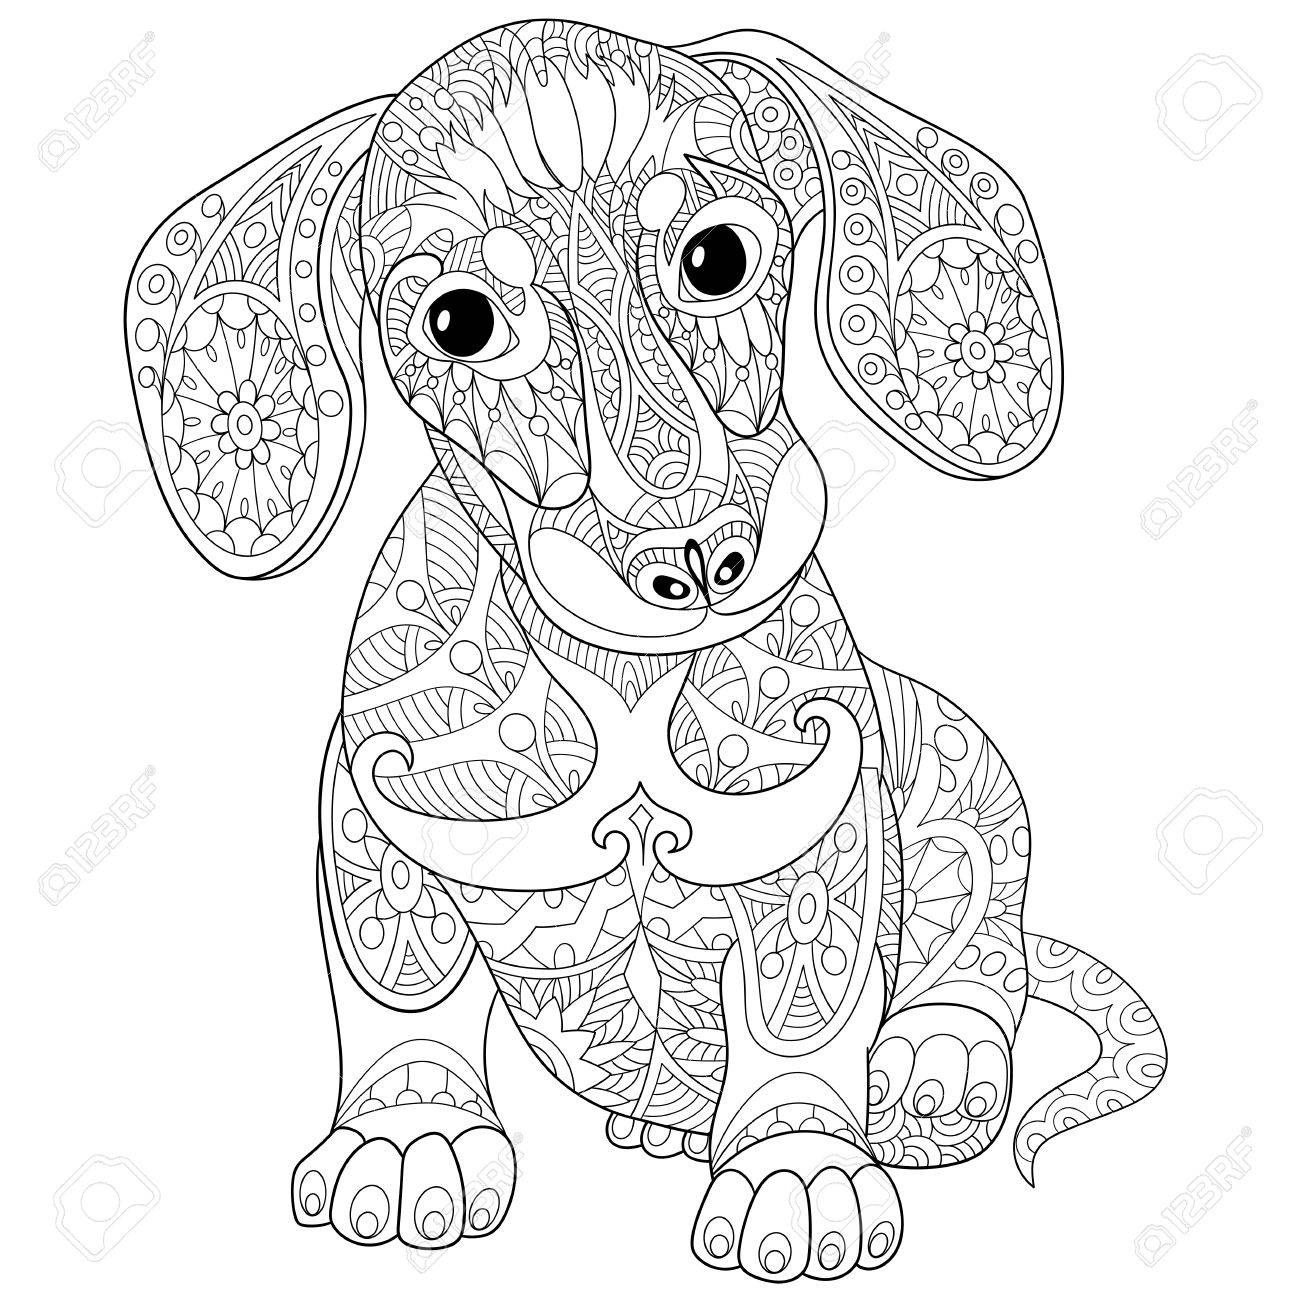 dachshund coloring pictures dachshund coloring book for all ages donkeytimeorg coloring pictures dachshund